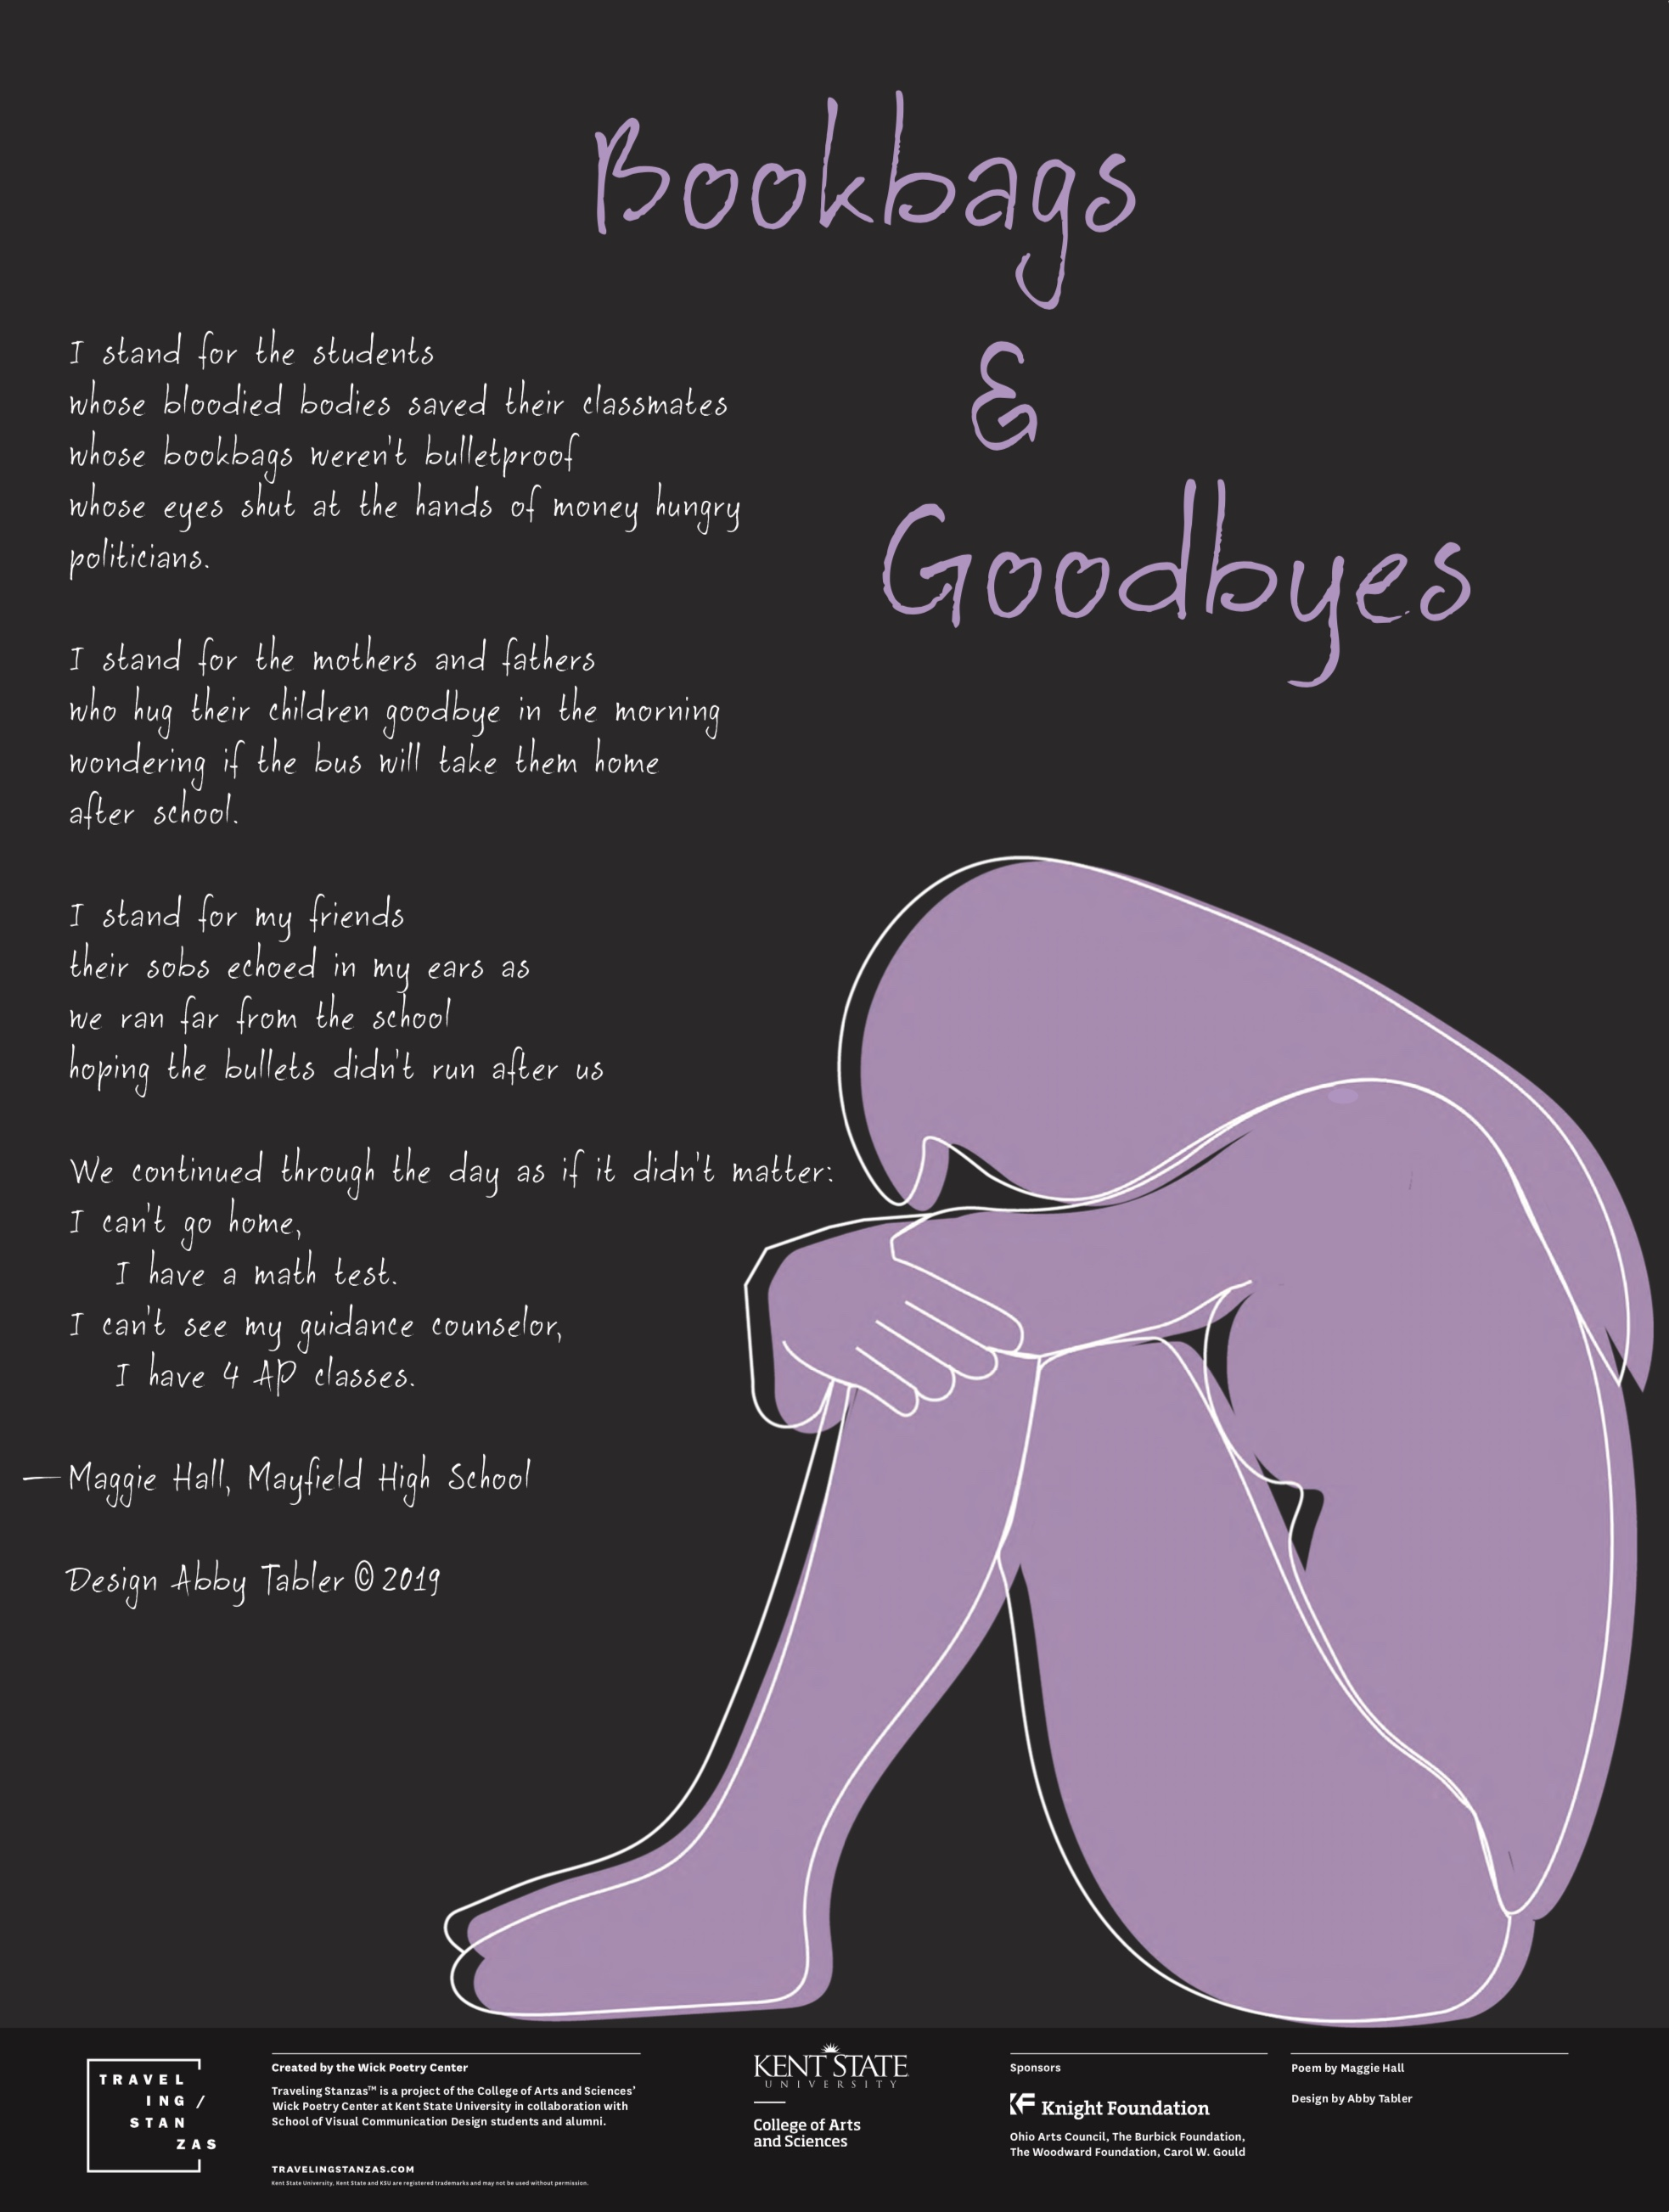 Bookbags and Goodbyes